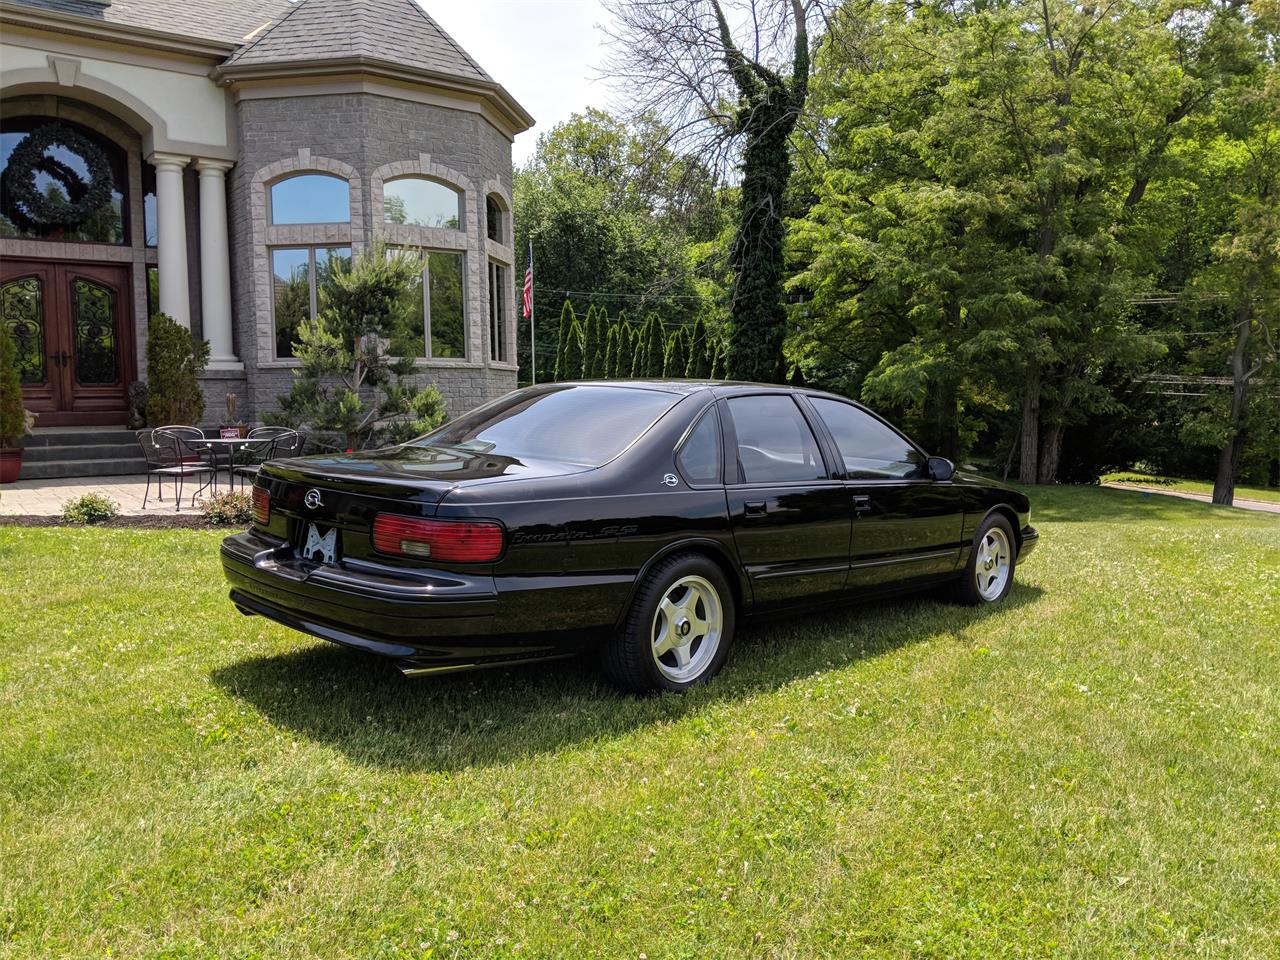 Large Picture of '96 Impala SS located in New York - $20,000.00 Offered by a Private Seller - NLTY